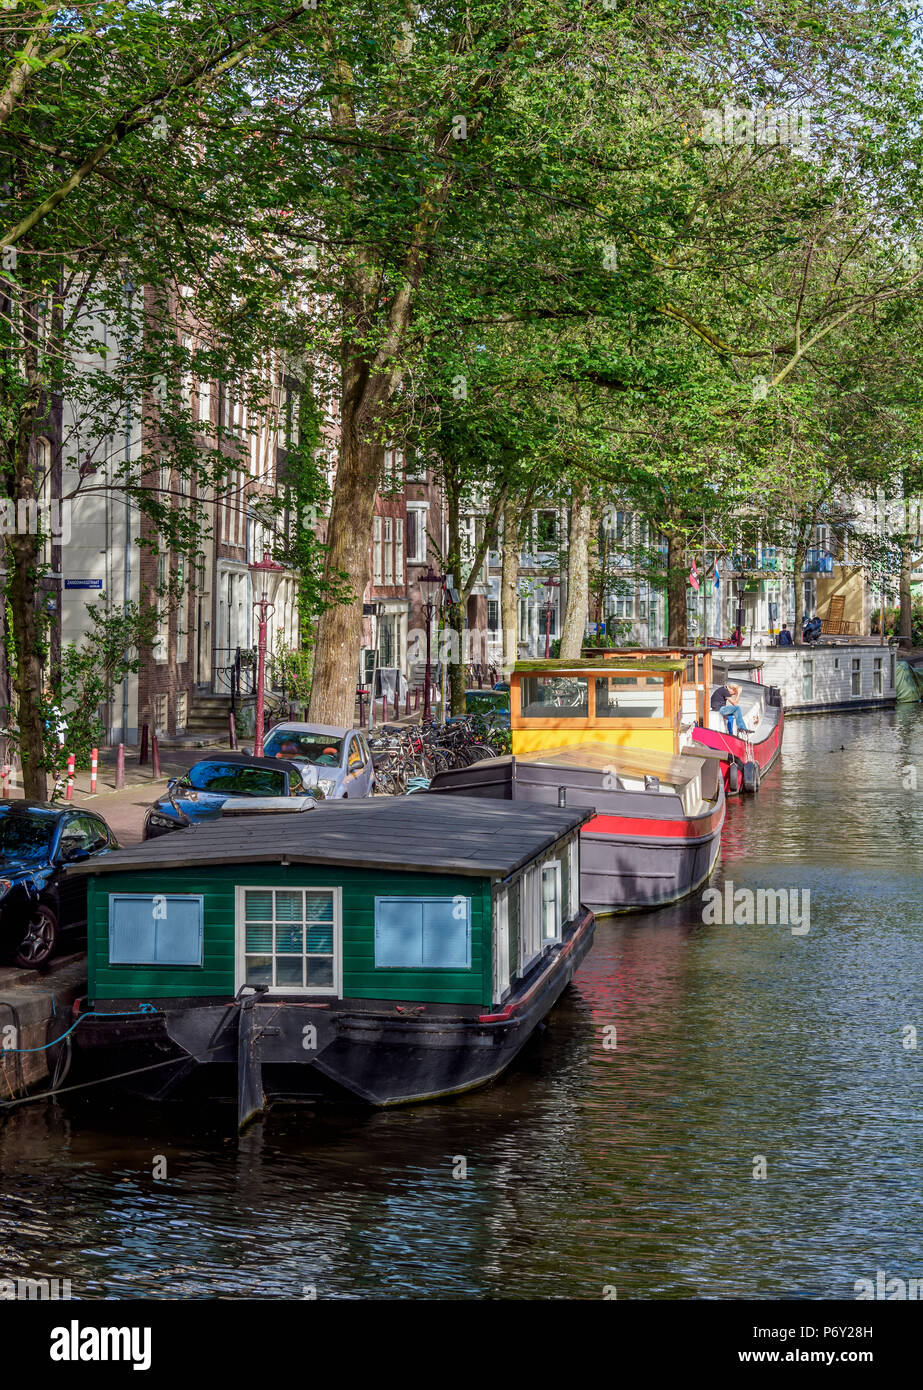 Houseboats on Raamgracht Canal, Amsterdam, North Holland, The Netherlands - Stock Image